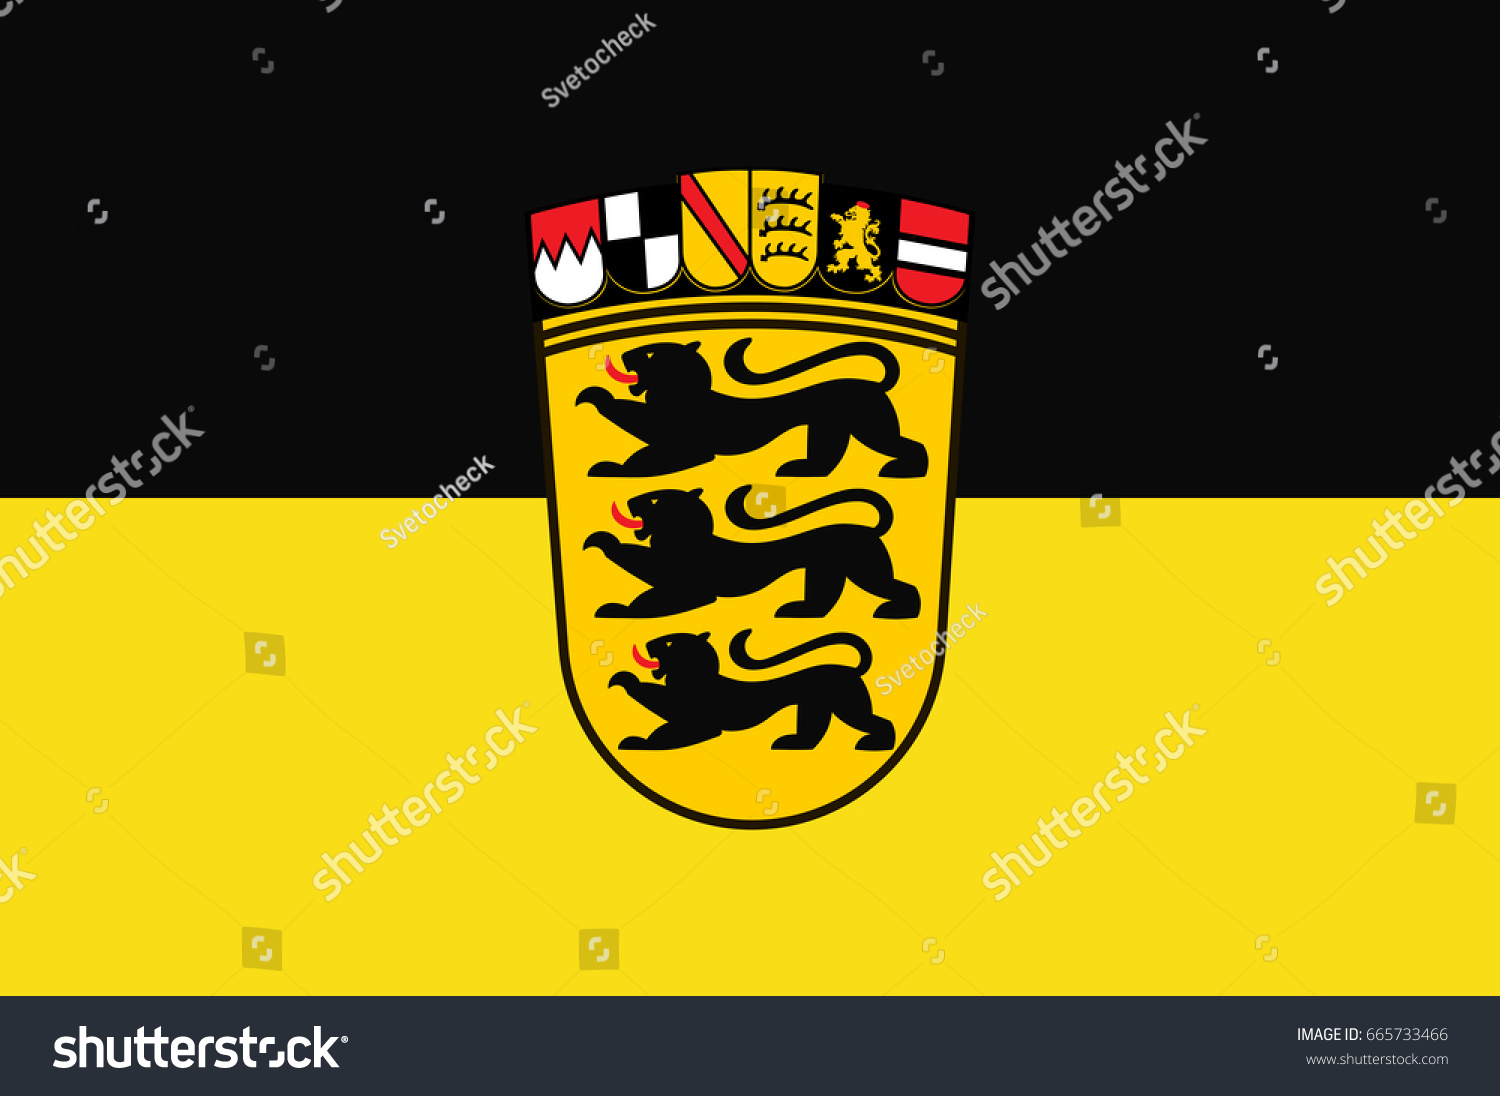 Flag badenwuerttemberg state germany located southwest stock vector flag of baden wuerttemberg is a state in germany located in the southwest east buycottarizona Gallery